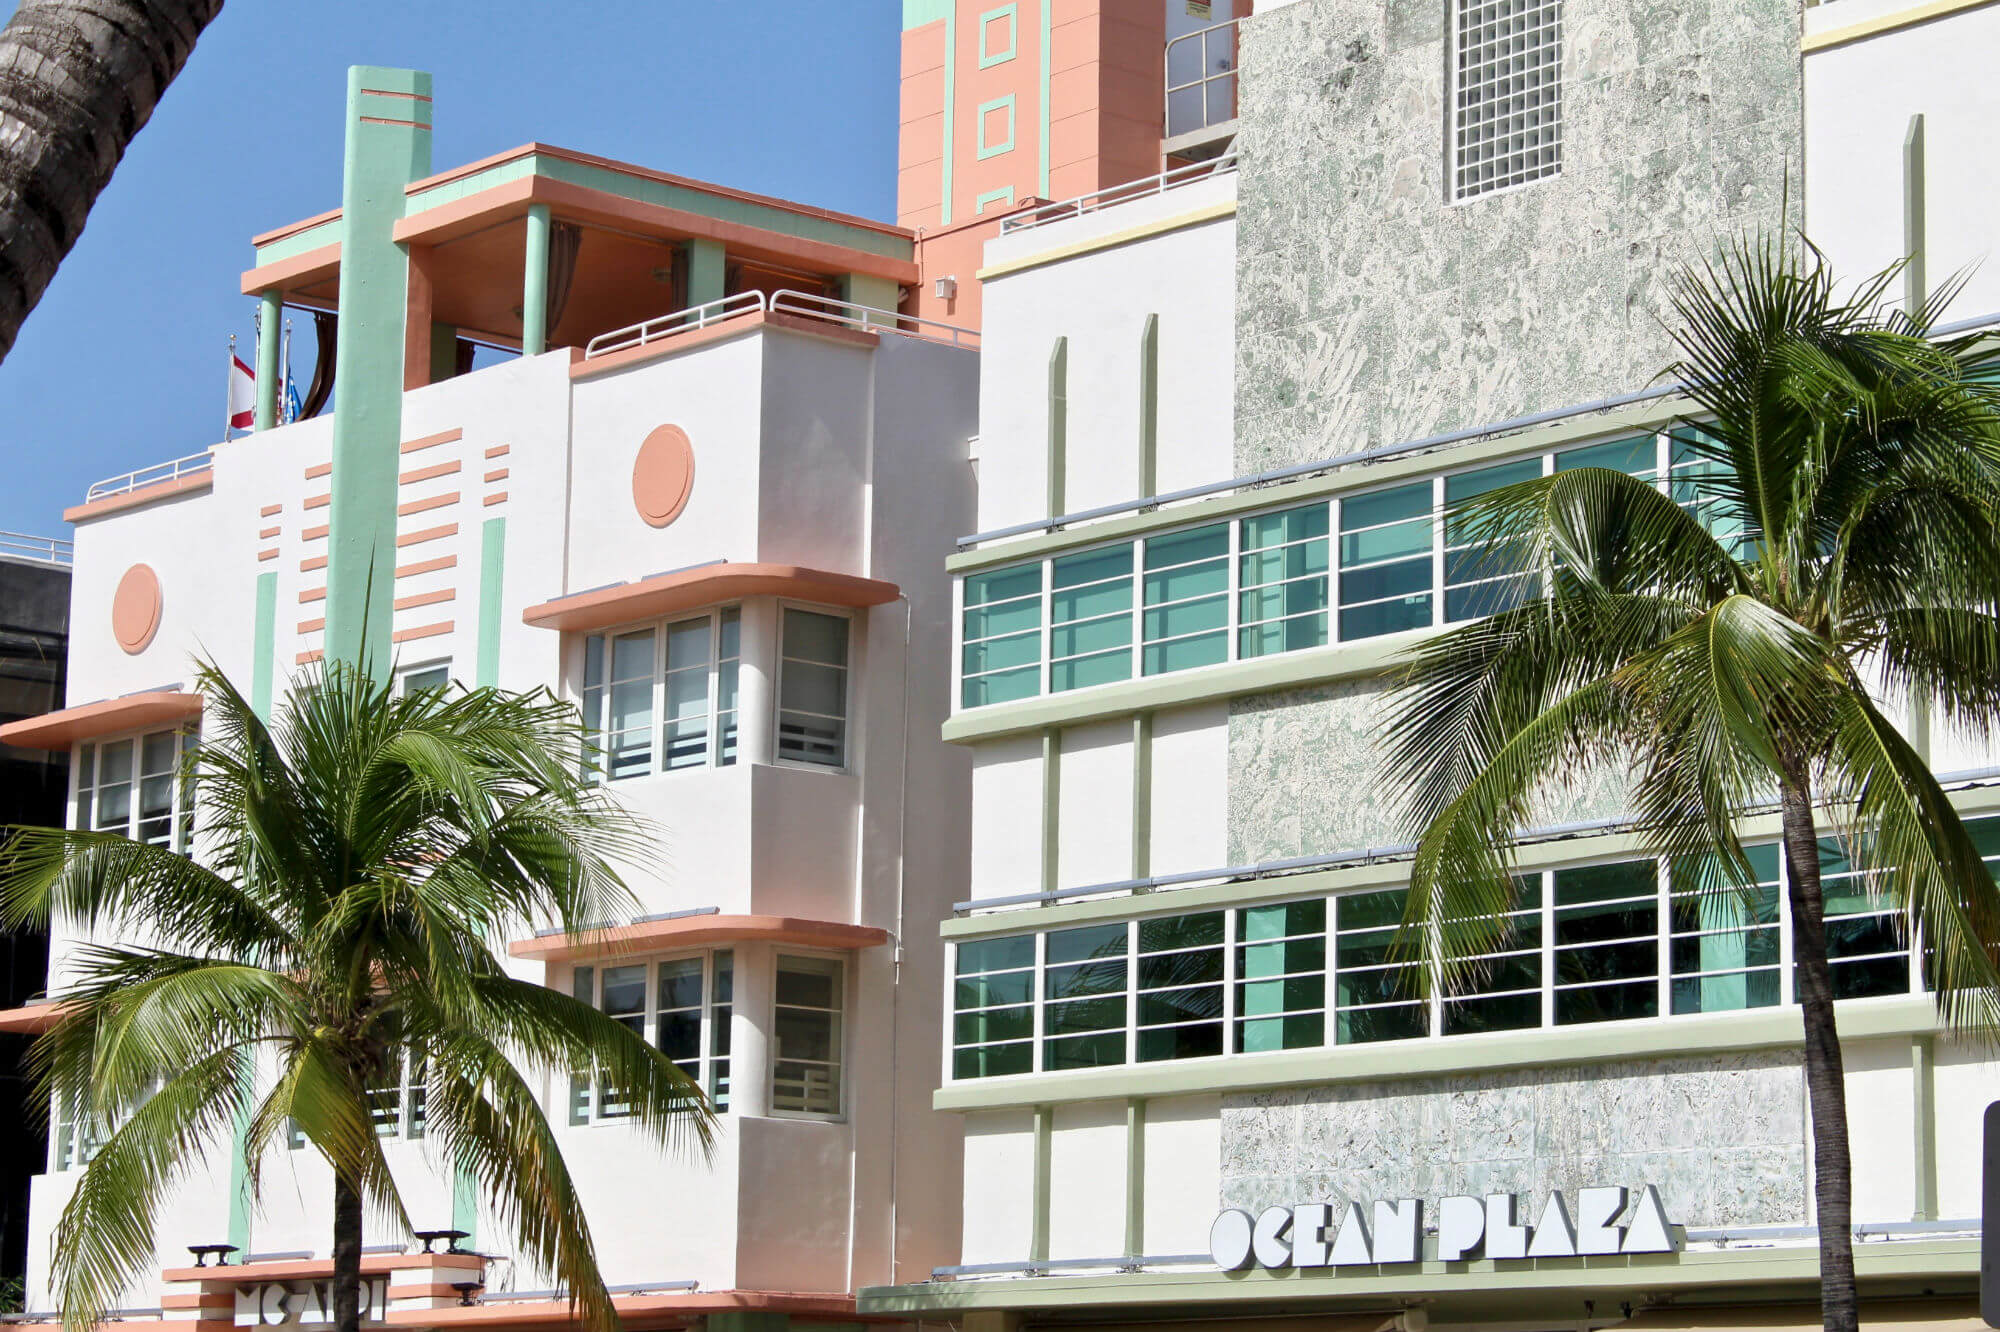 art deco district miami DOVE MANGIARE A MIAMI